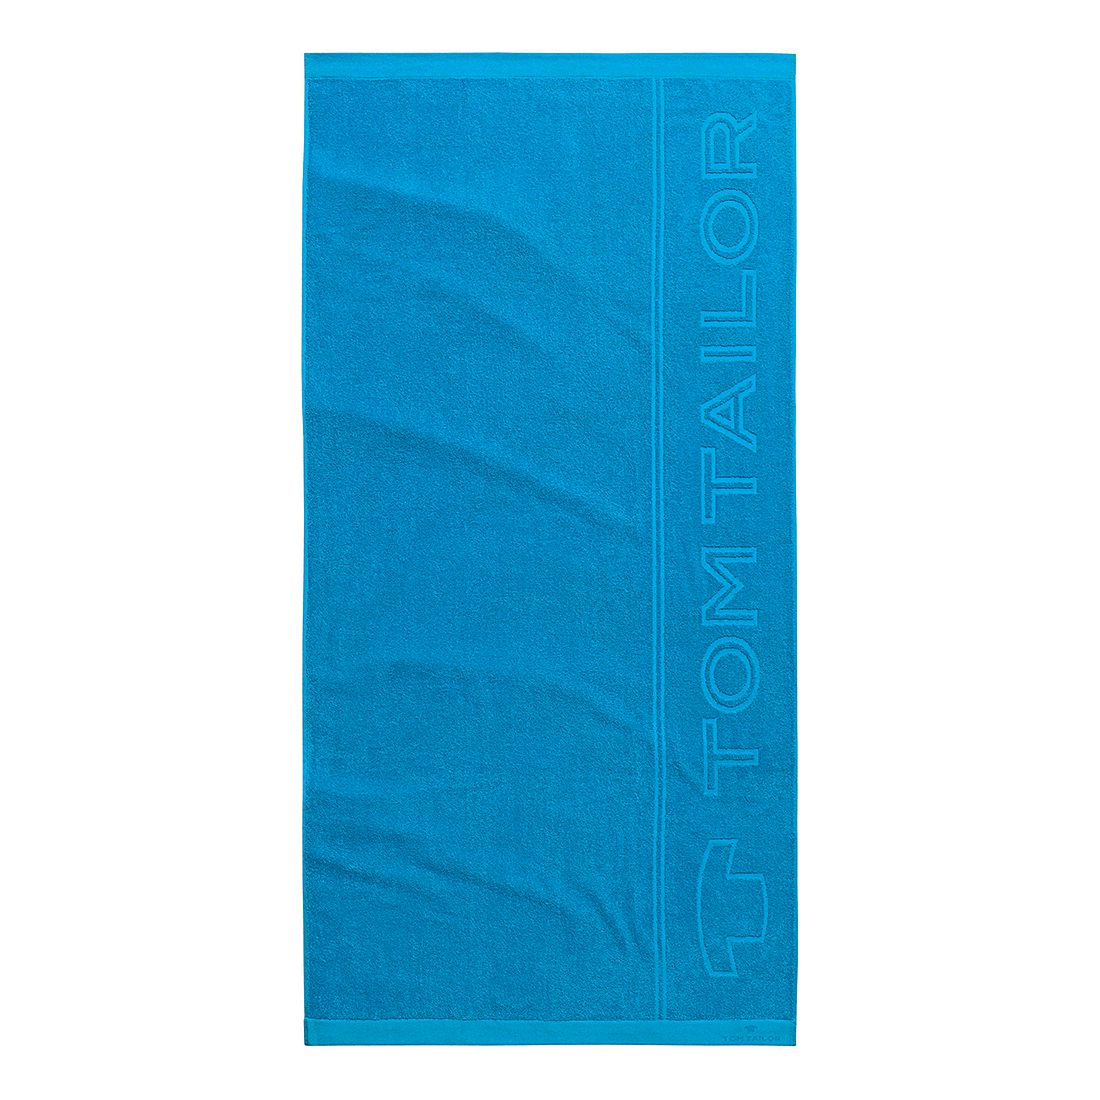 Home 24 - Serviette beach towels - turquoise, tom tailor